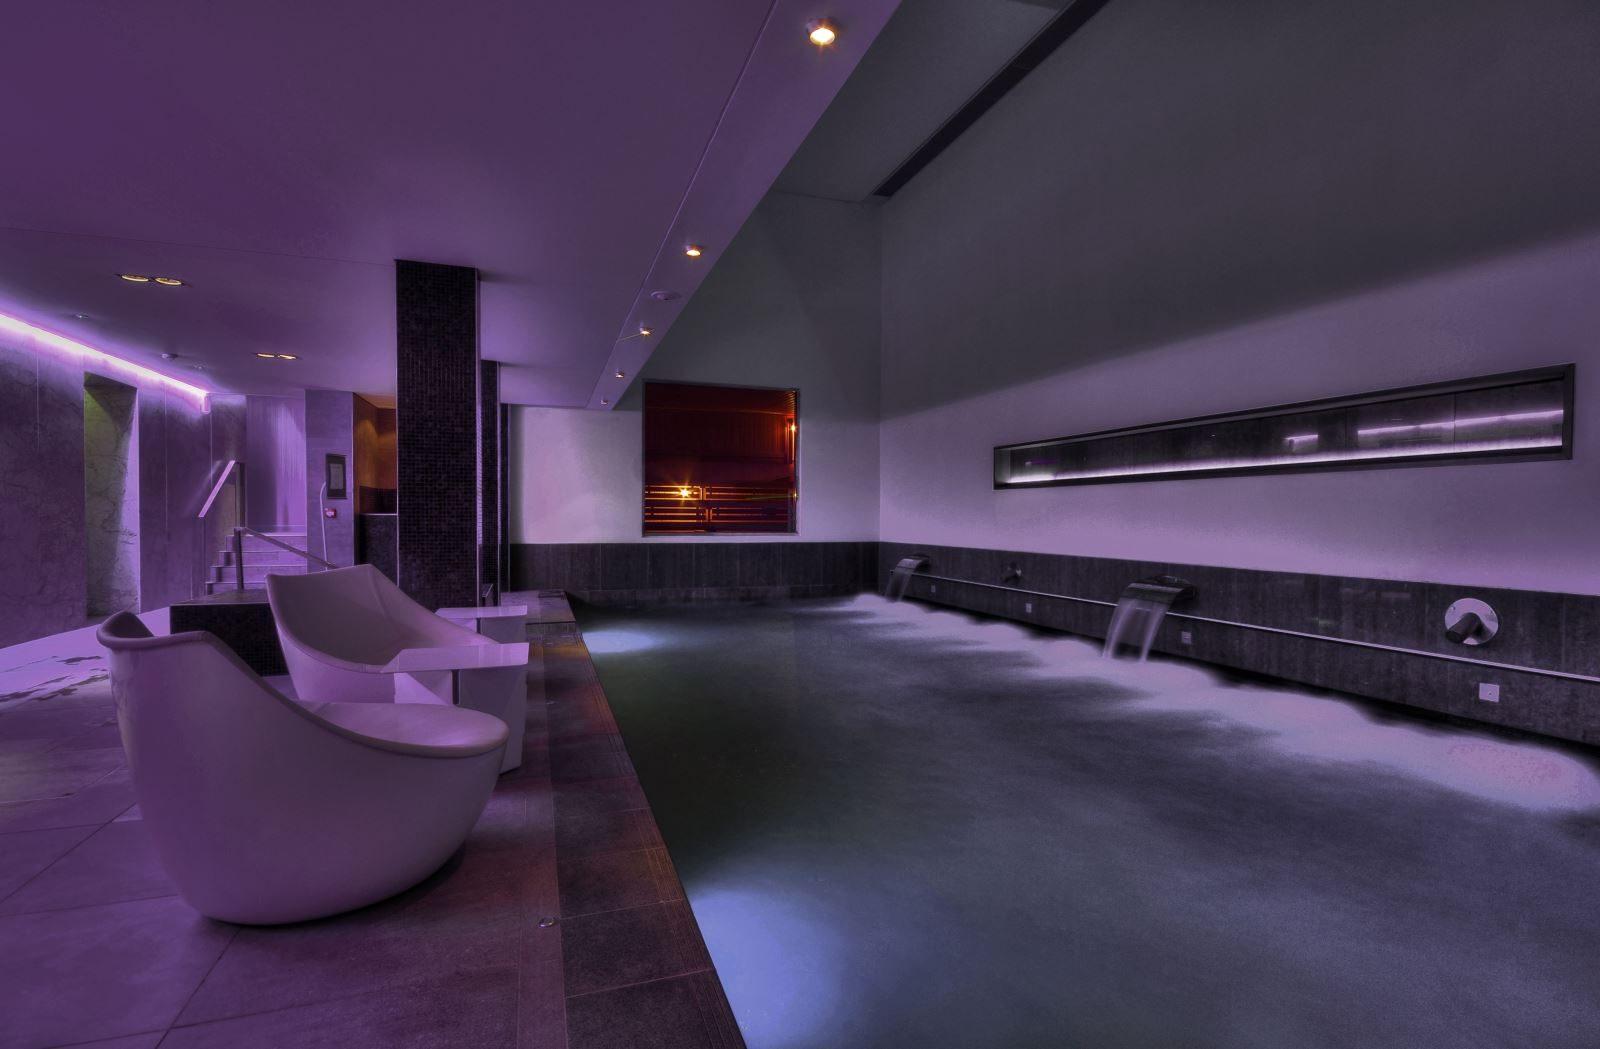 blythswood spa